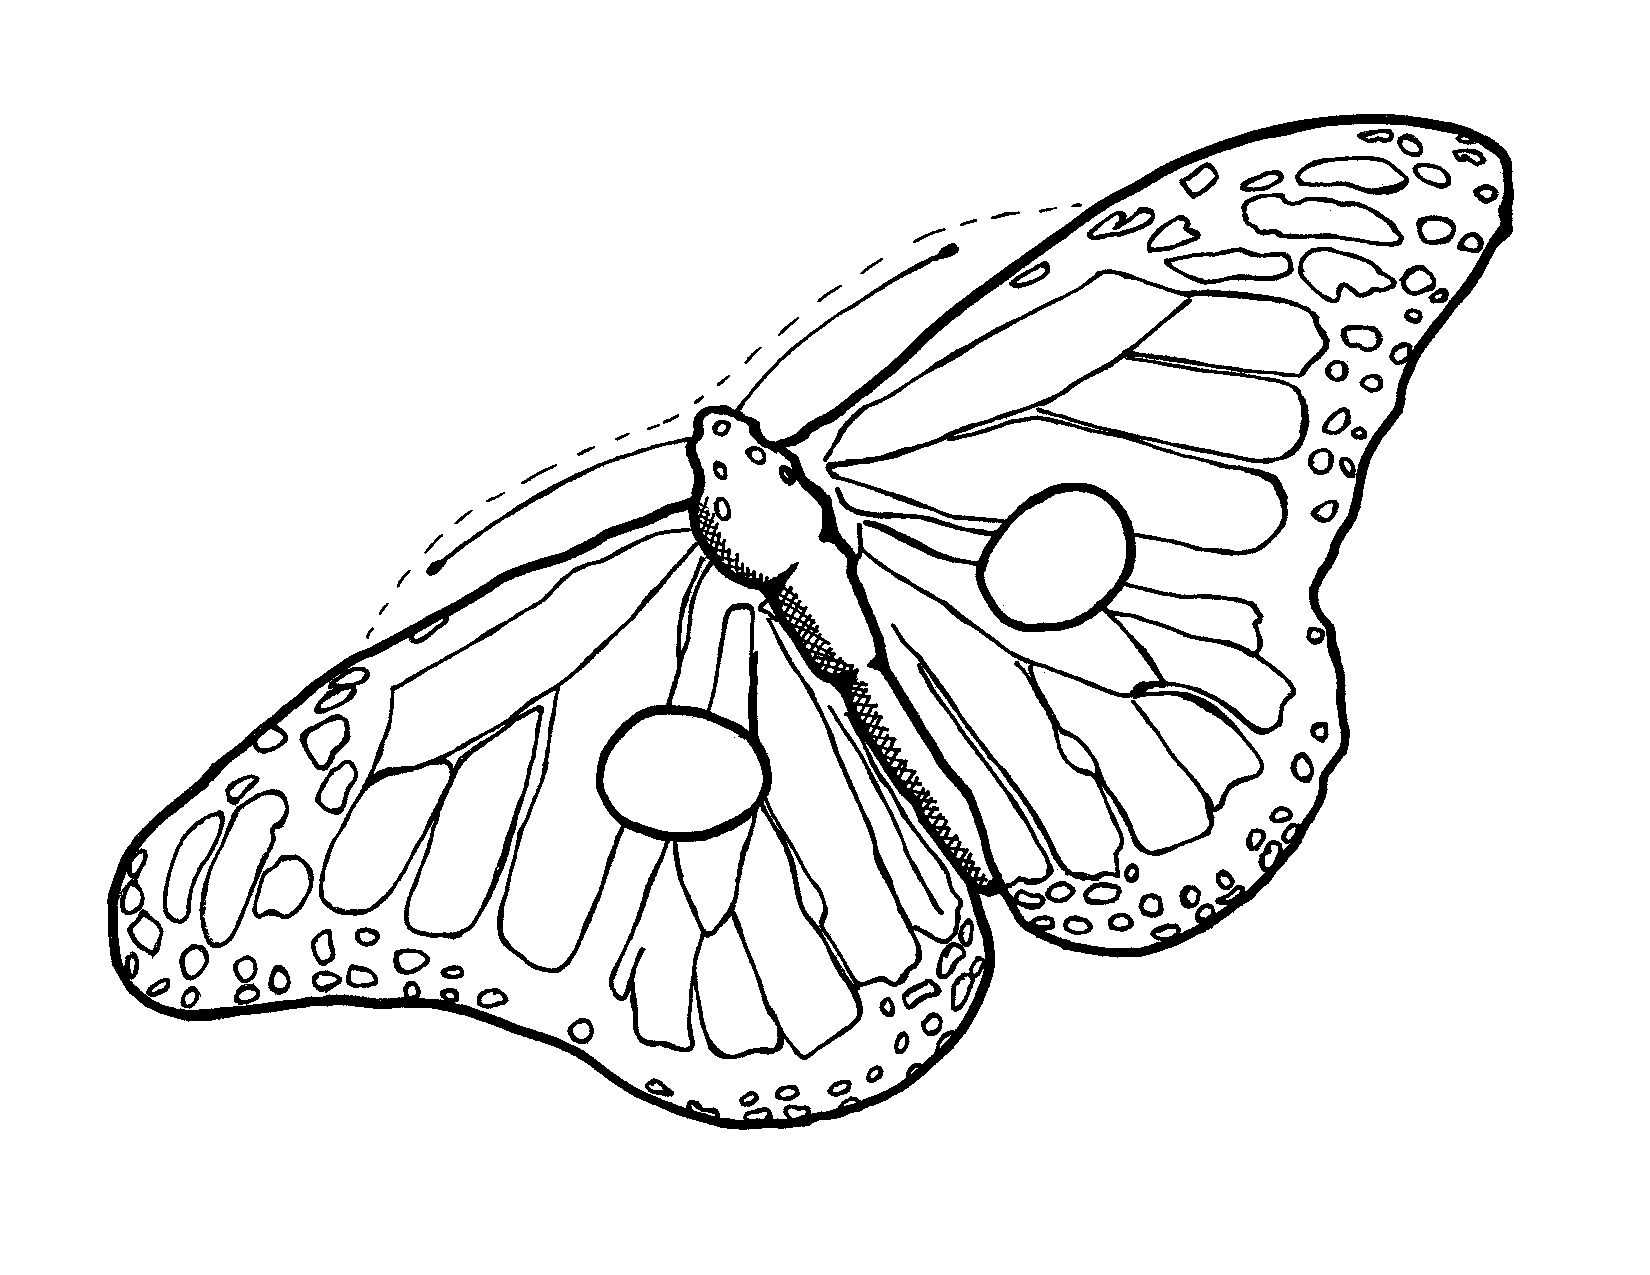 Butterfly line drawing images at getdrawings free for personal 1650x1275 monarch butterfly outline maxwellsz